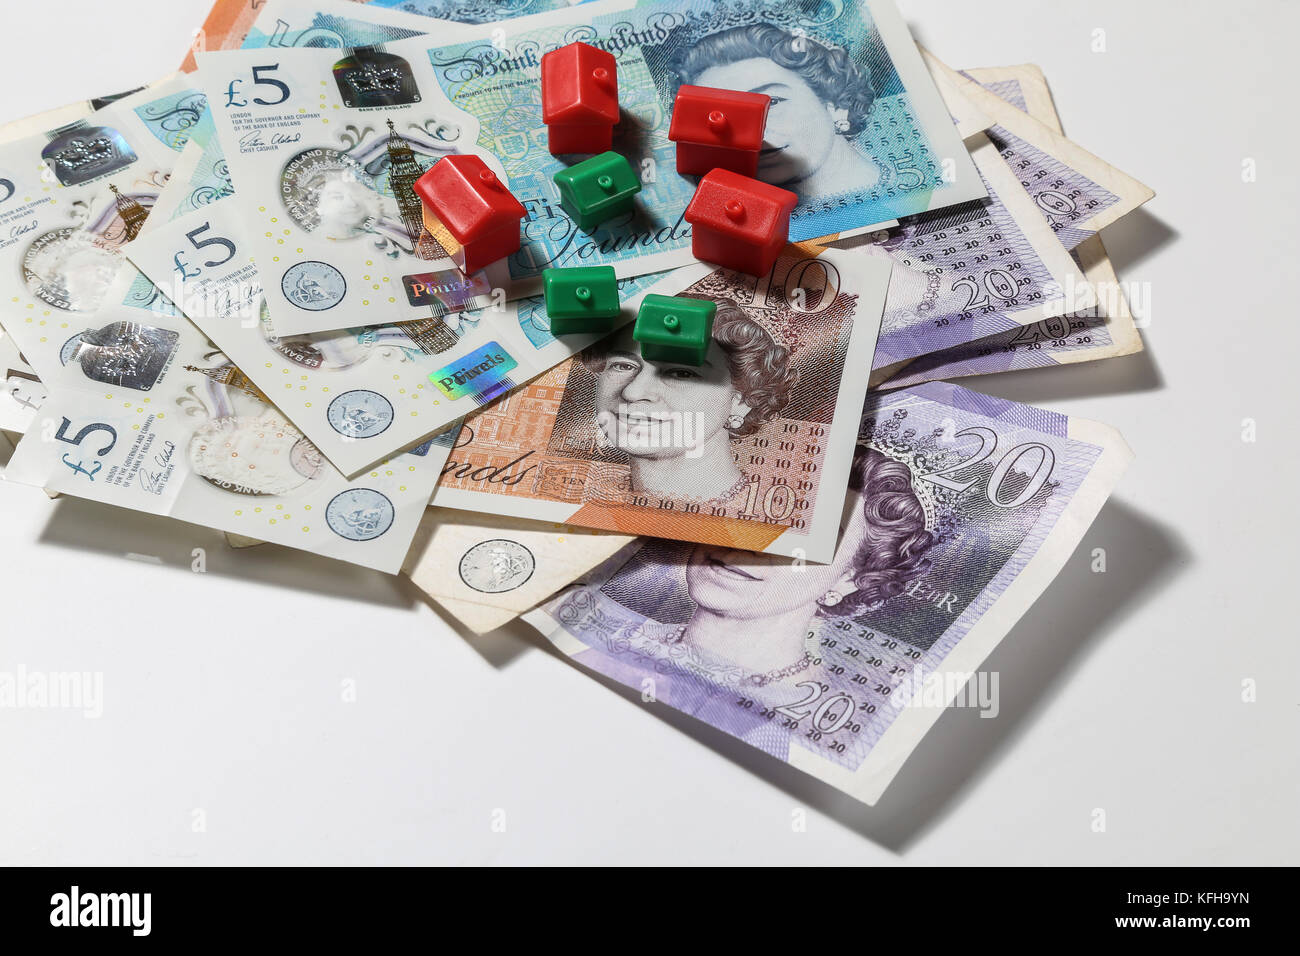 New British £5 and £10 notes with red and green monopoly houses and hotels - Stock Image